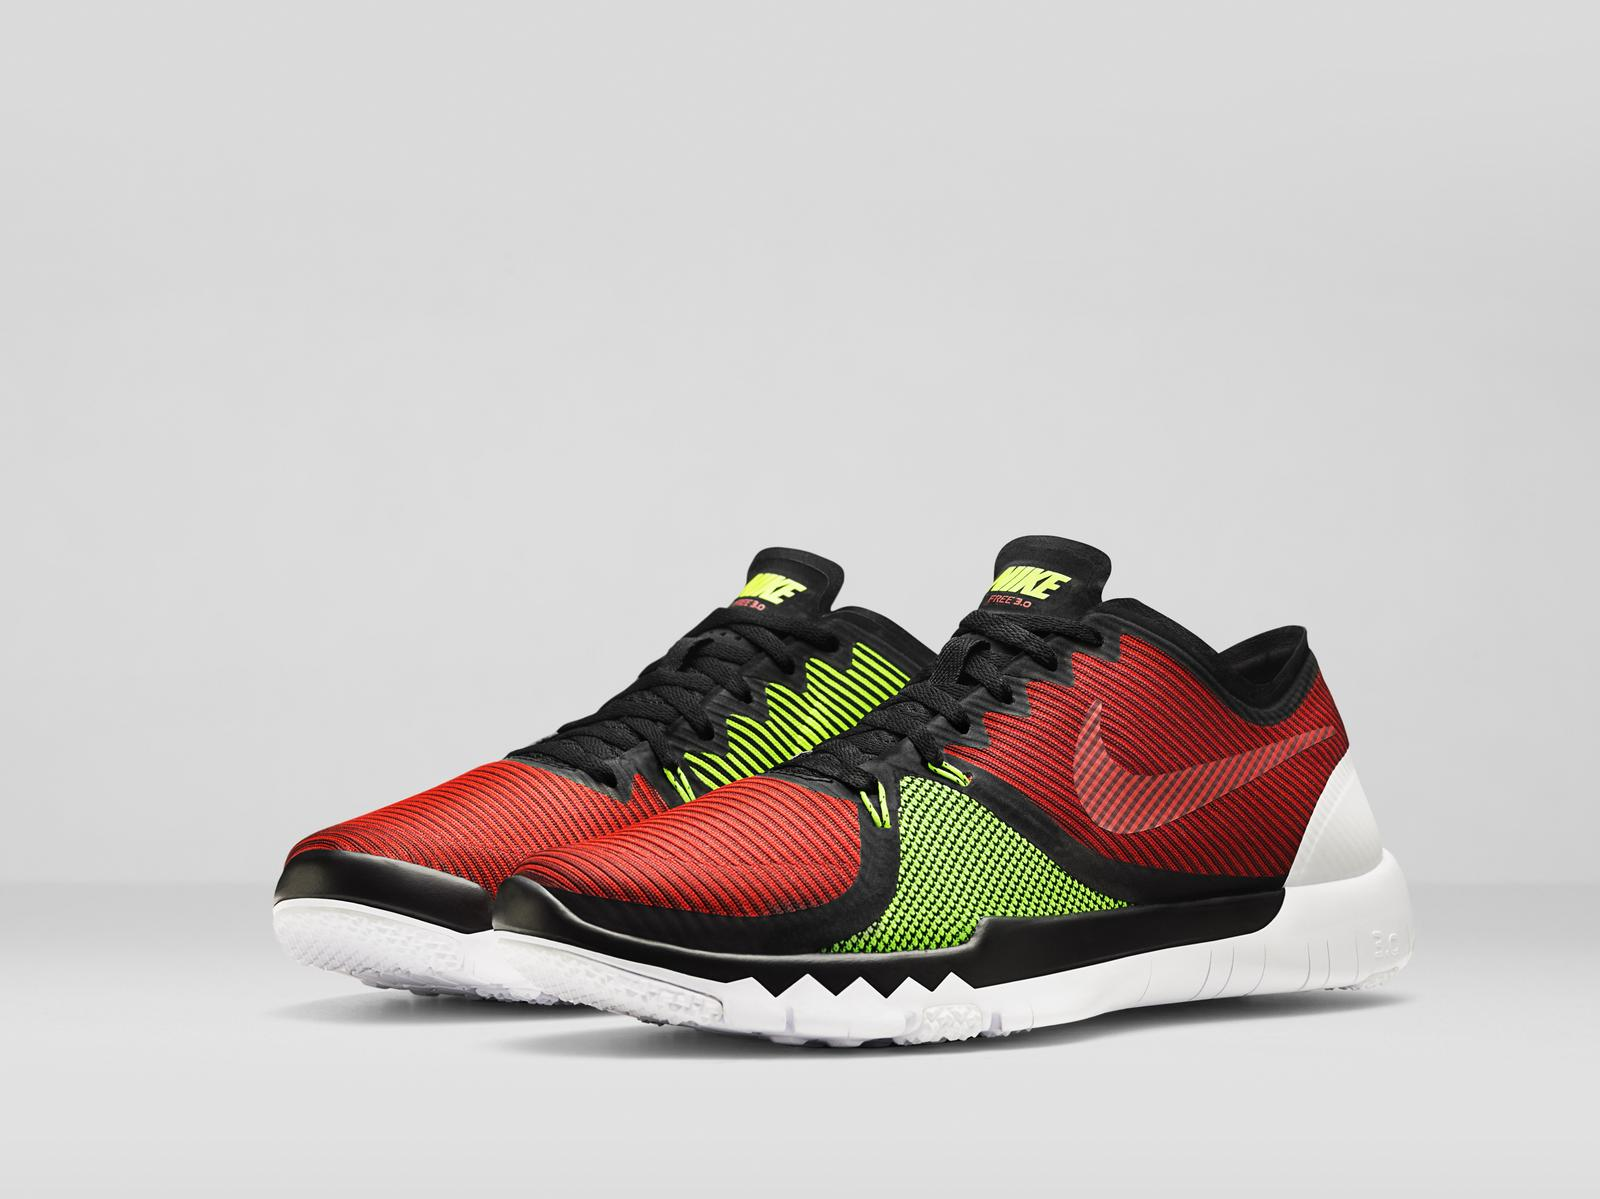 5aebad63540 latest Free Trainer 3.0 offers structural lockdown for improved quickness  in all directions. Nike Training ...